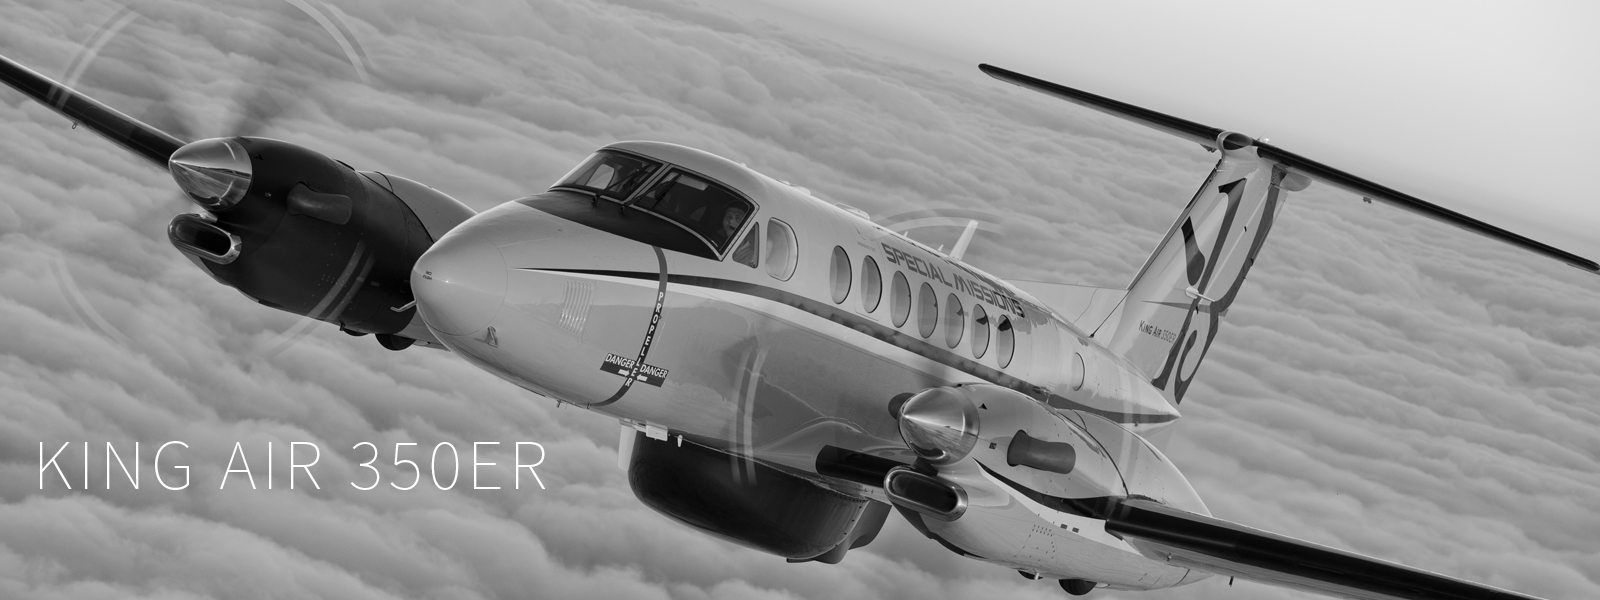 New King Air 350ER (With images) Aircraft sales